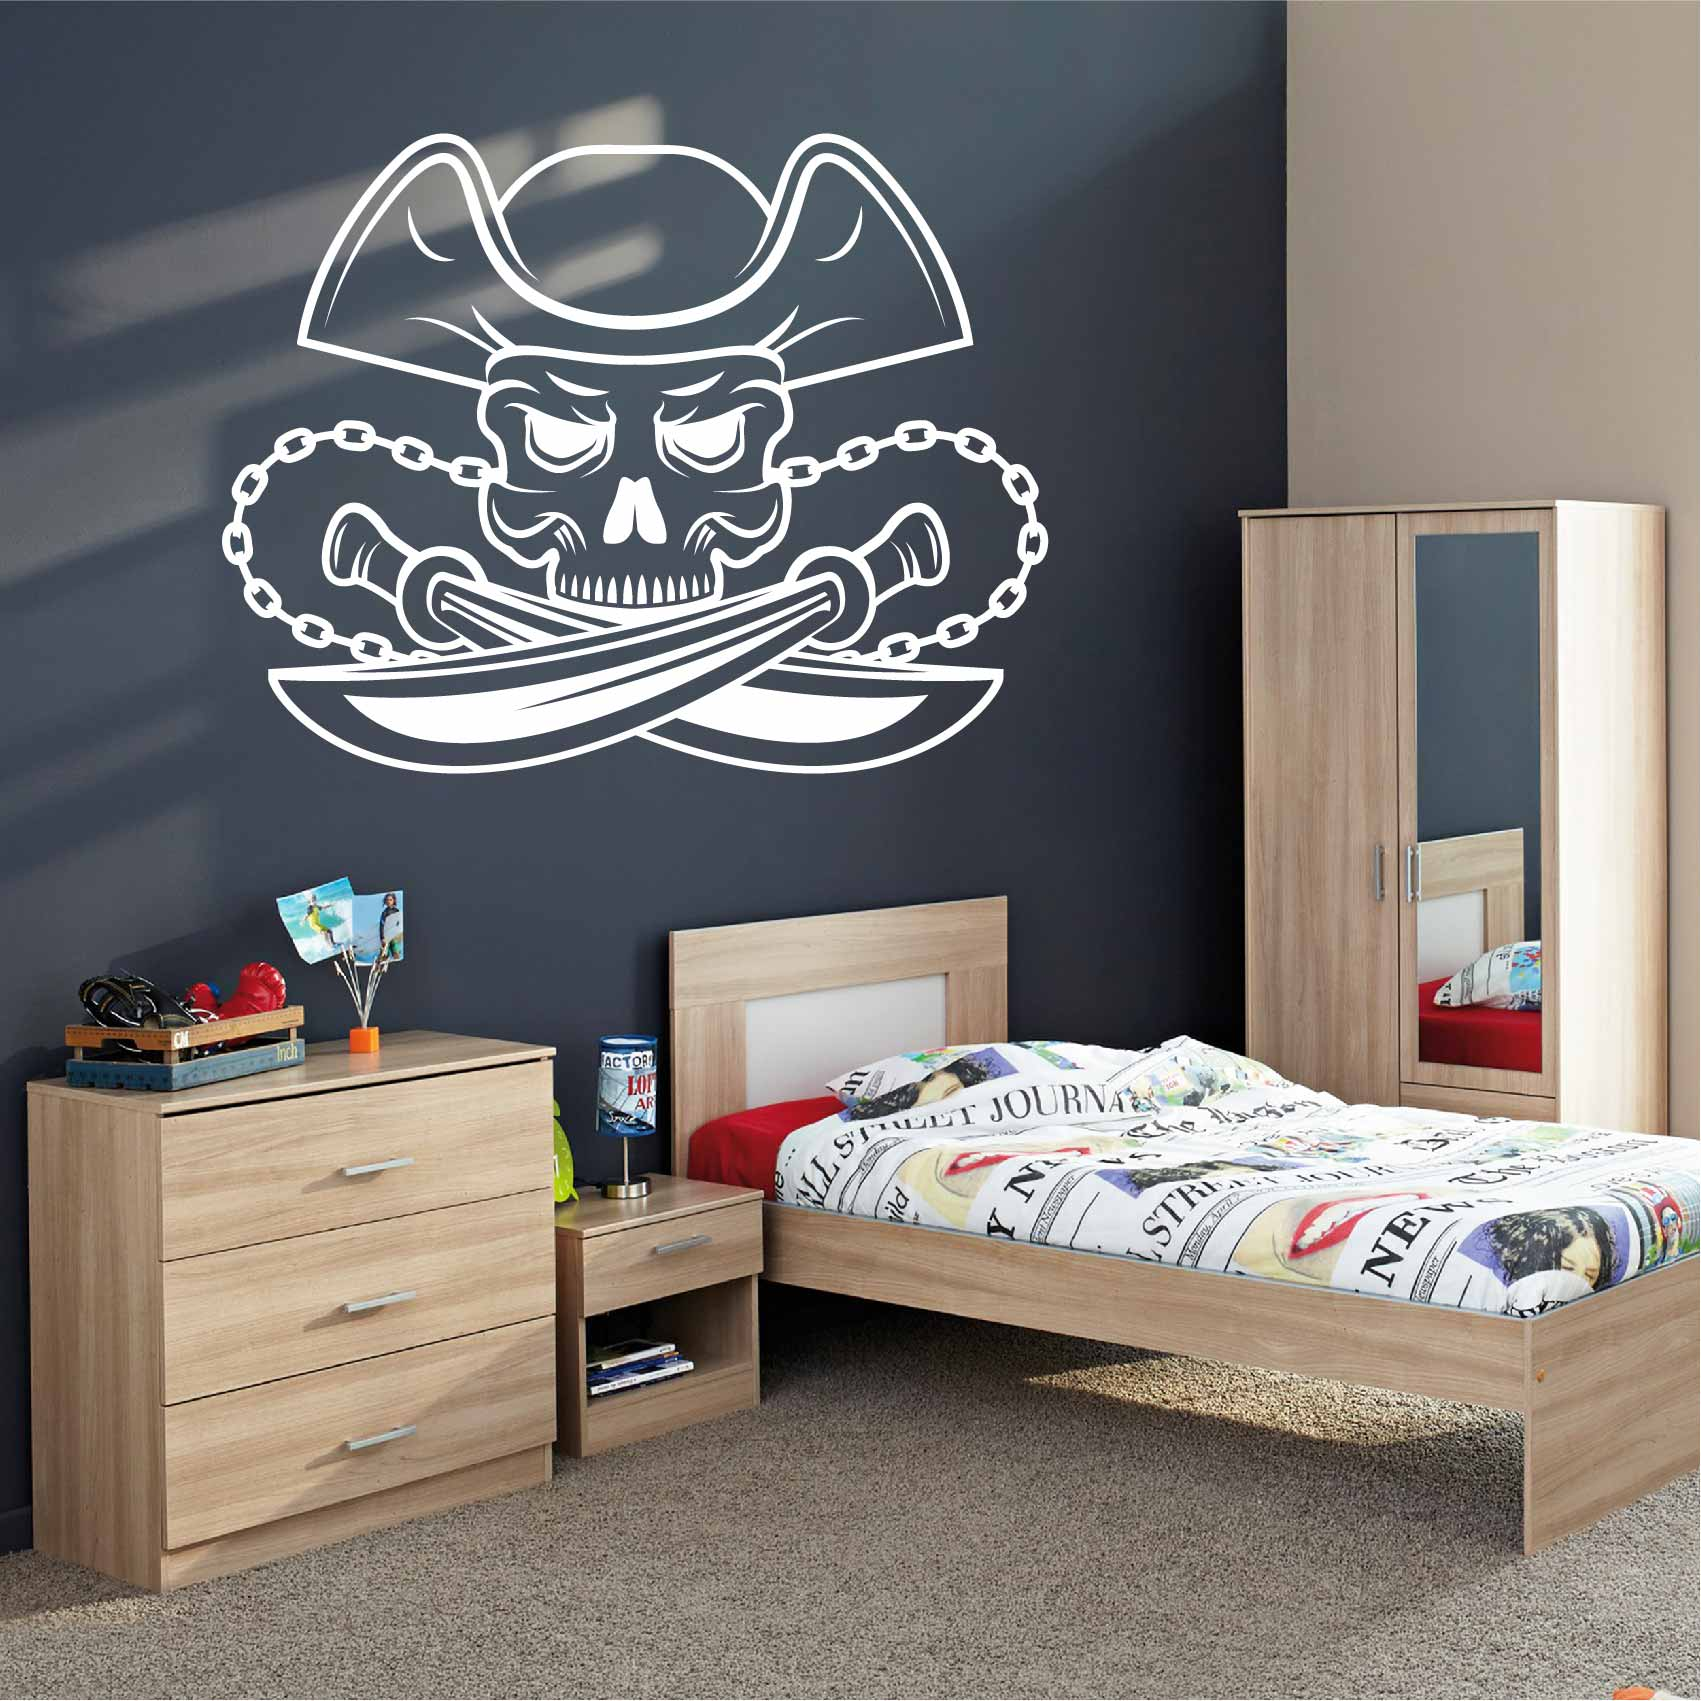 Stickers De Pirate Autocollant Muraux Et Deco - Chambre Garcon Pirate